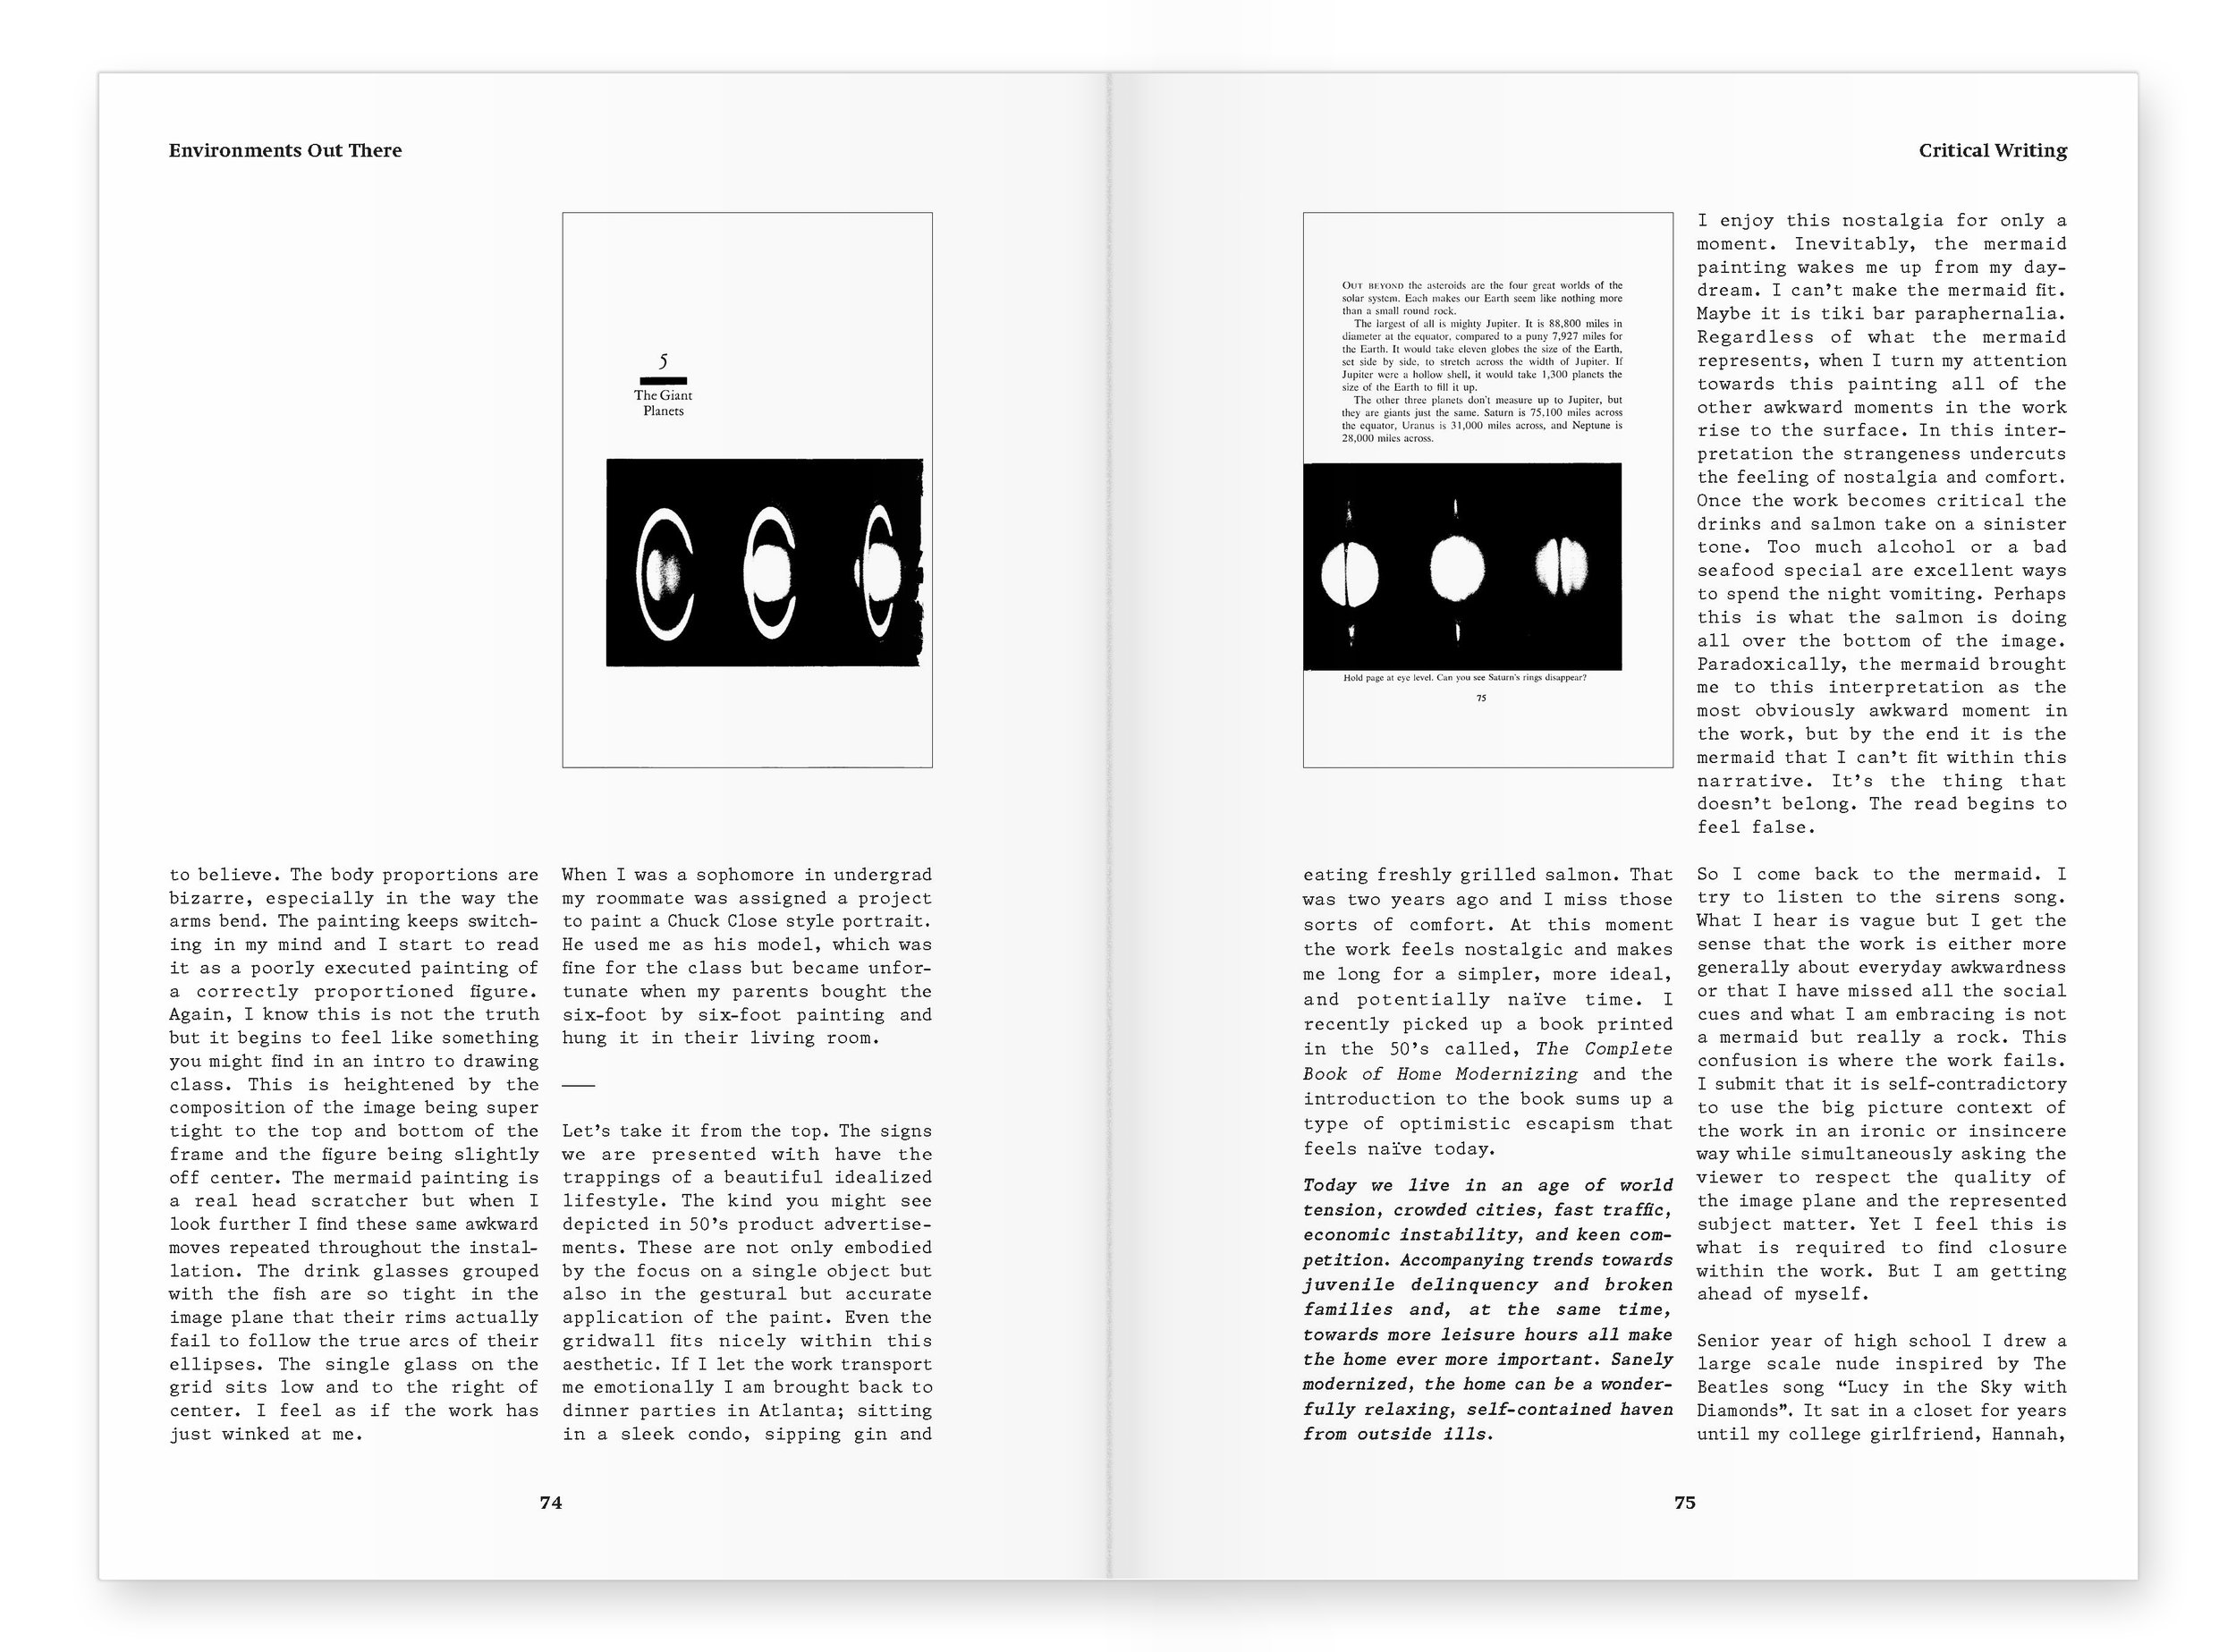 Page Spreads_74.jpg